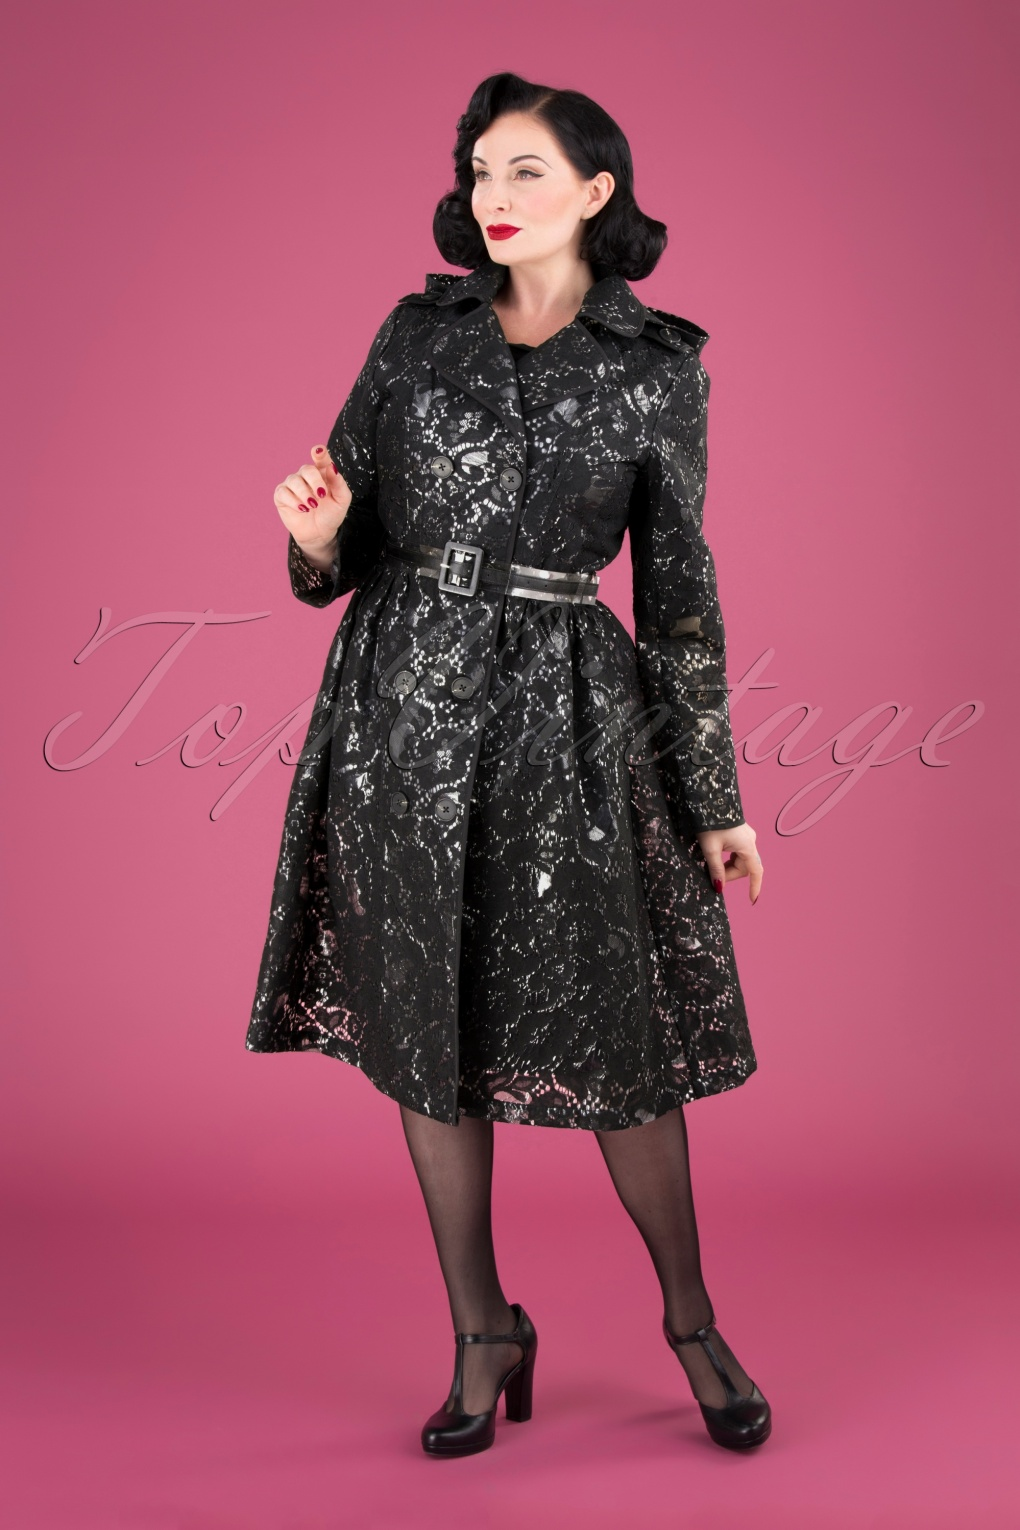 Vintage Coats & Jackets | Retro Coats and Jackets 50s Lucinda Lace Raincoat in Black £166.13 AT vintagedancer.com